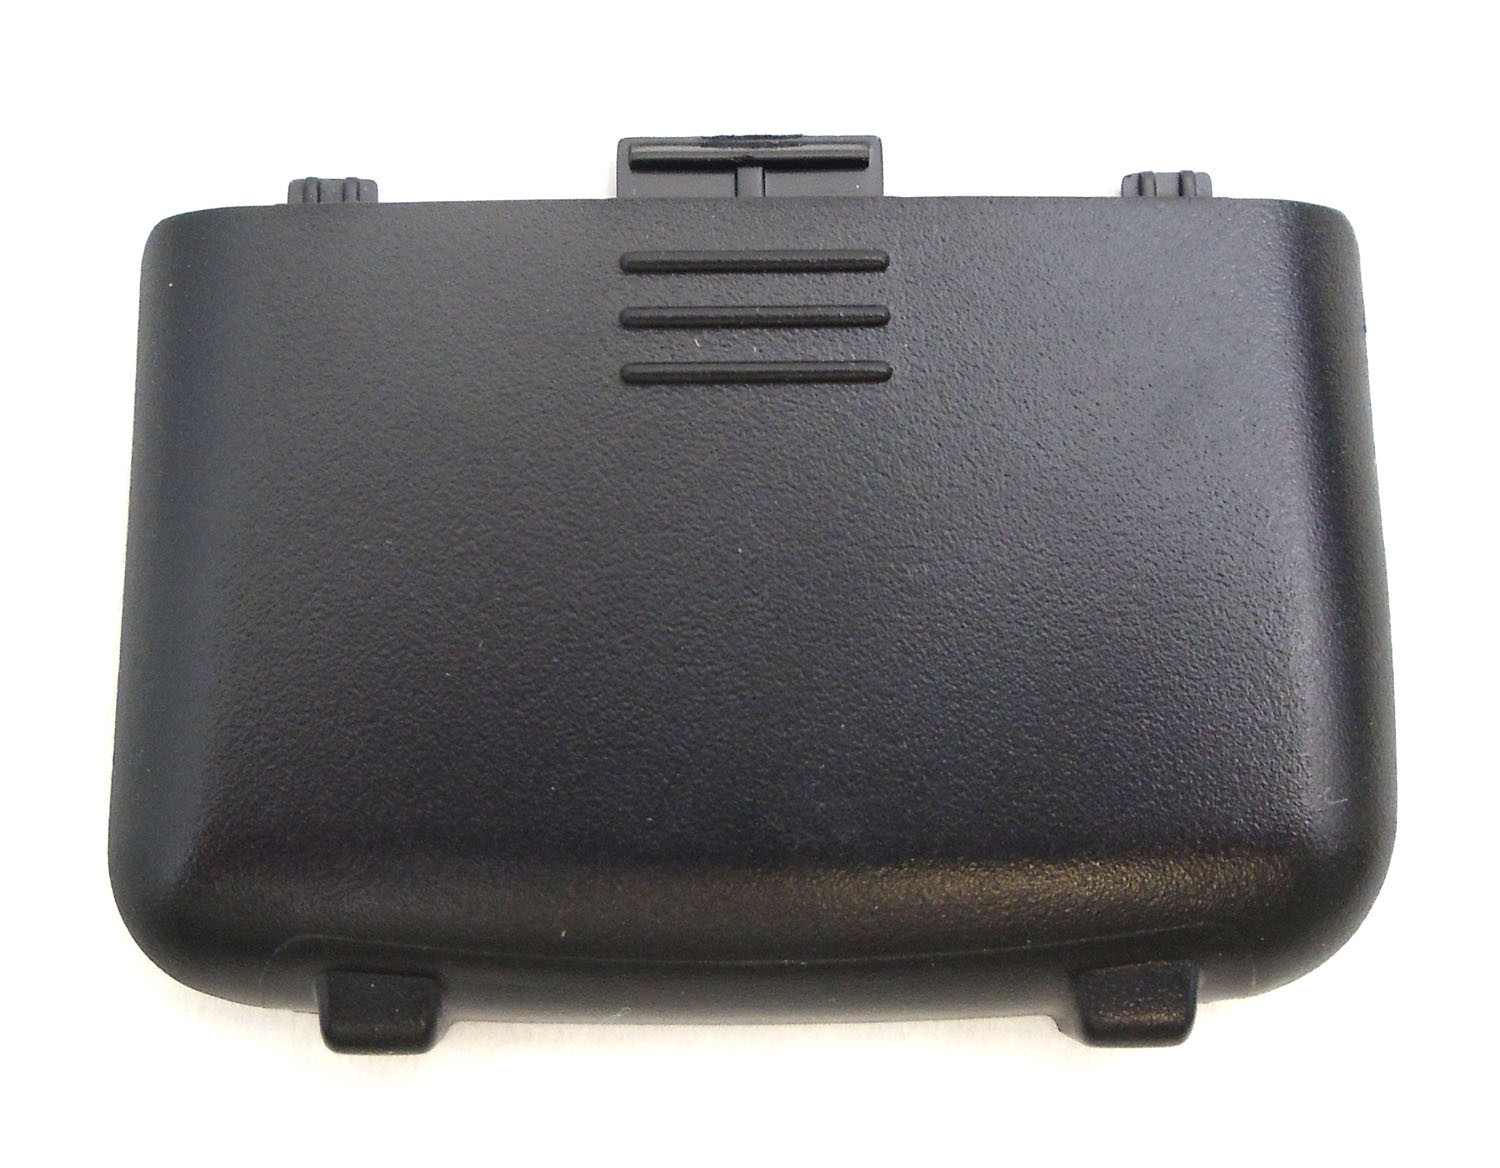 UNIDEN BC72XLT & BC95XLT REPLACEMENT BATTERY COVER